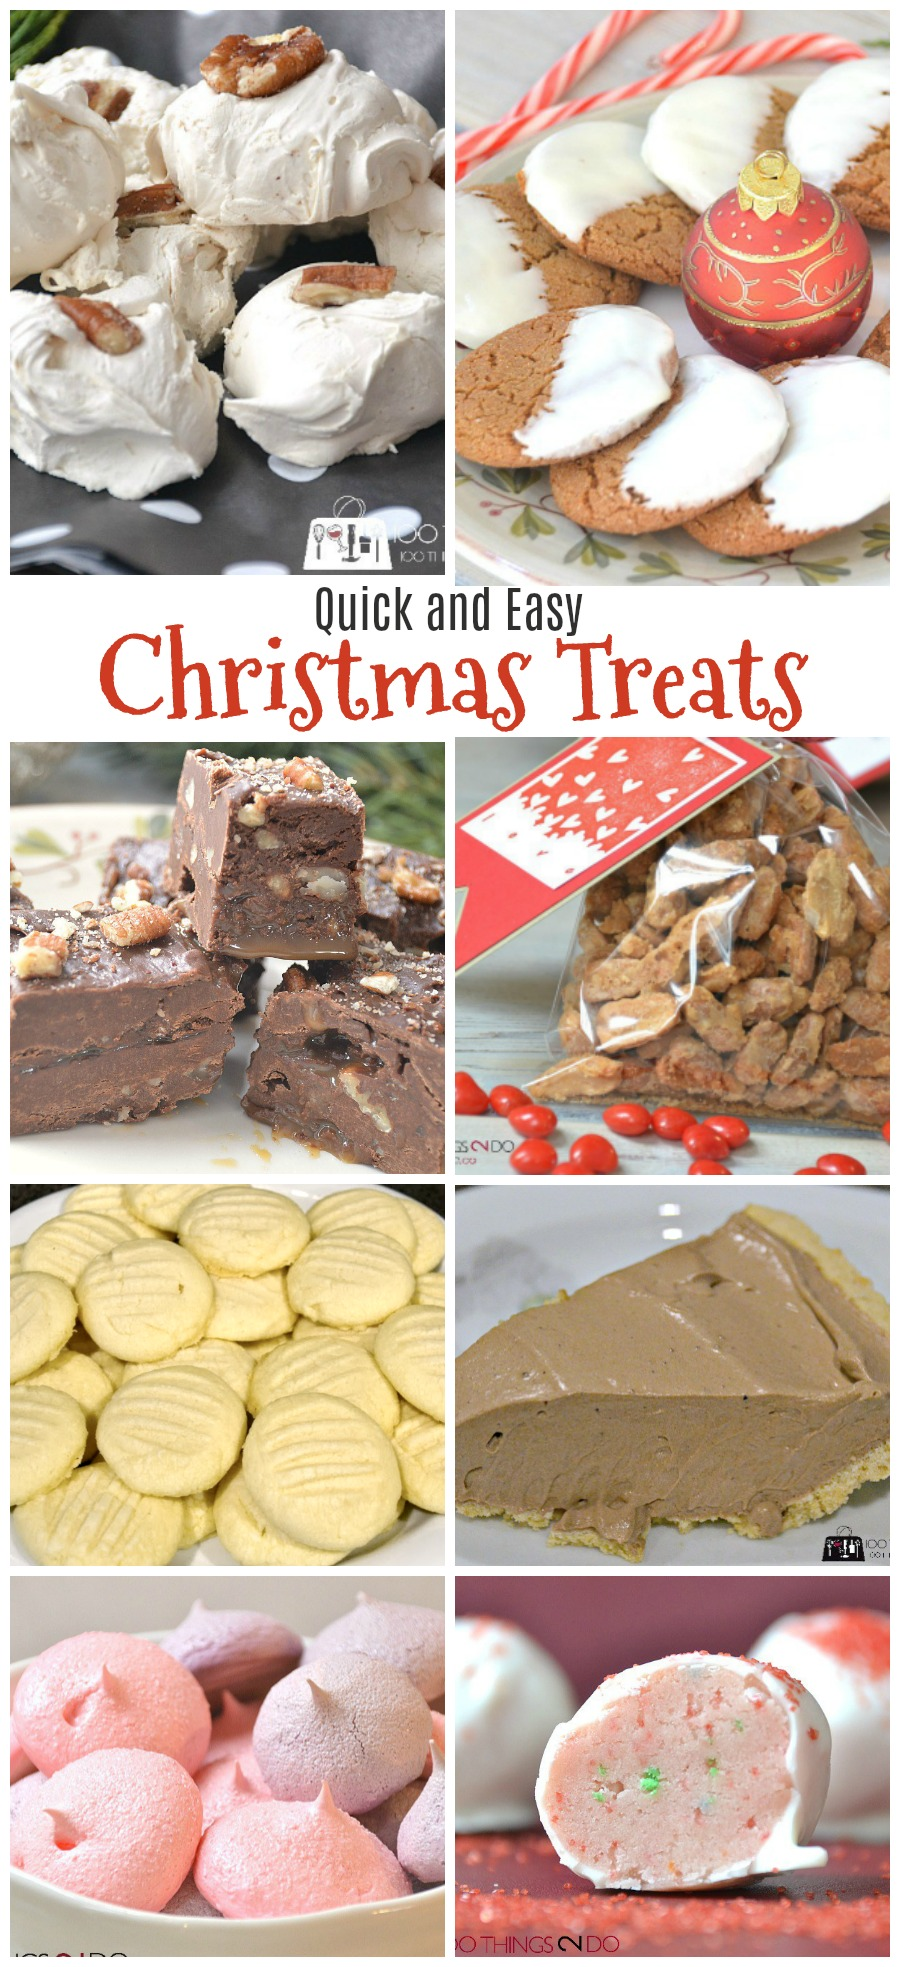 Quick and easy Christmas treats, Holiday baking, Christmas desserts, Christmas fudge, shortbread, no bake truffles, no-bake chocolate cream pie, candied nuts, beer nuts, divinity fudge, turtle fudge, ginger snaps